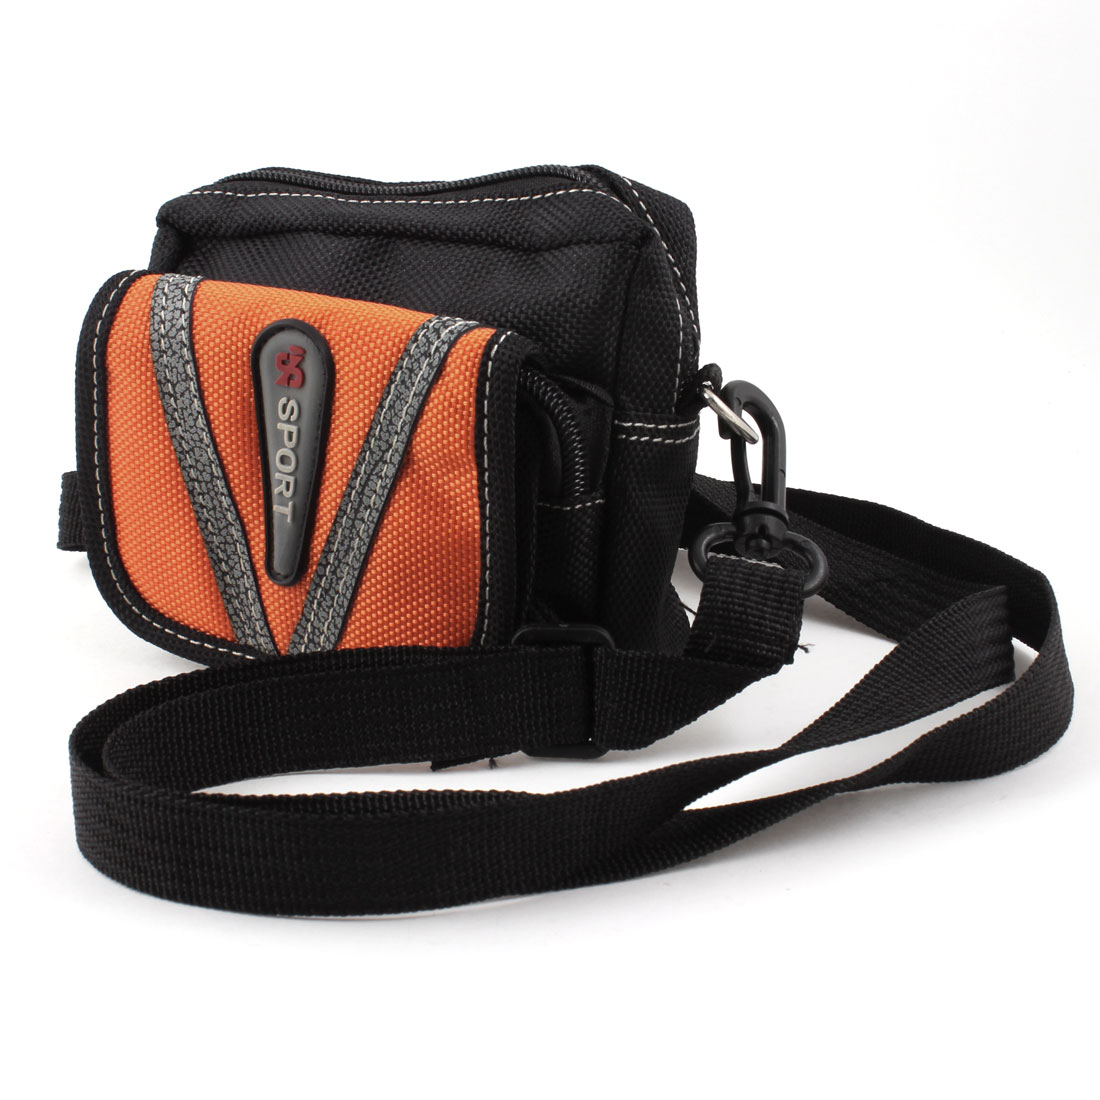 Man Black Orange Faux Leather Decor 2 Pockets Adjustable Strap Handle Waist Bag